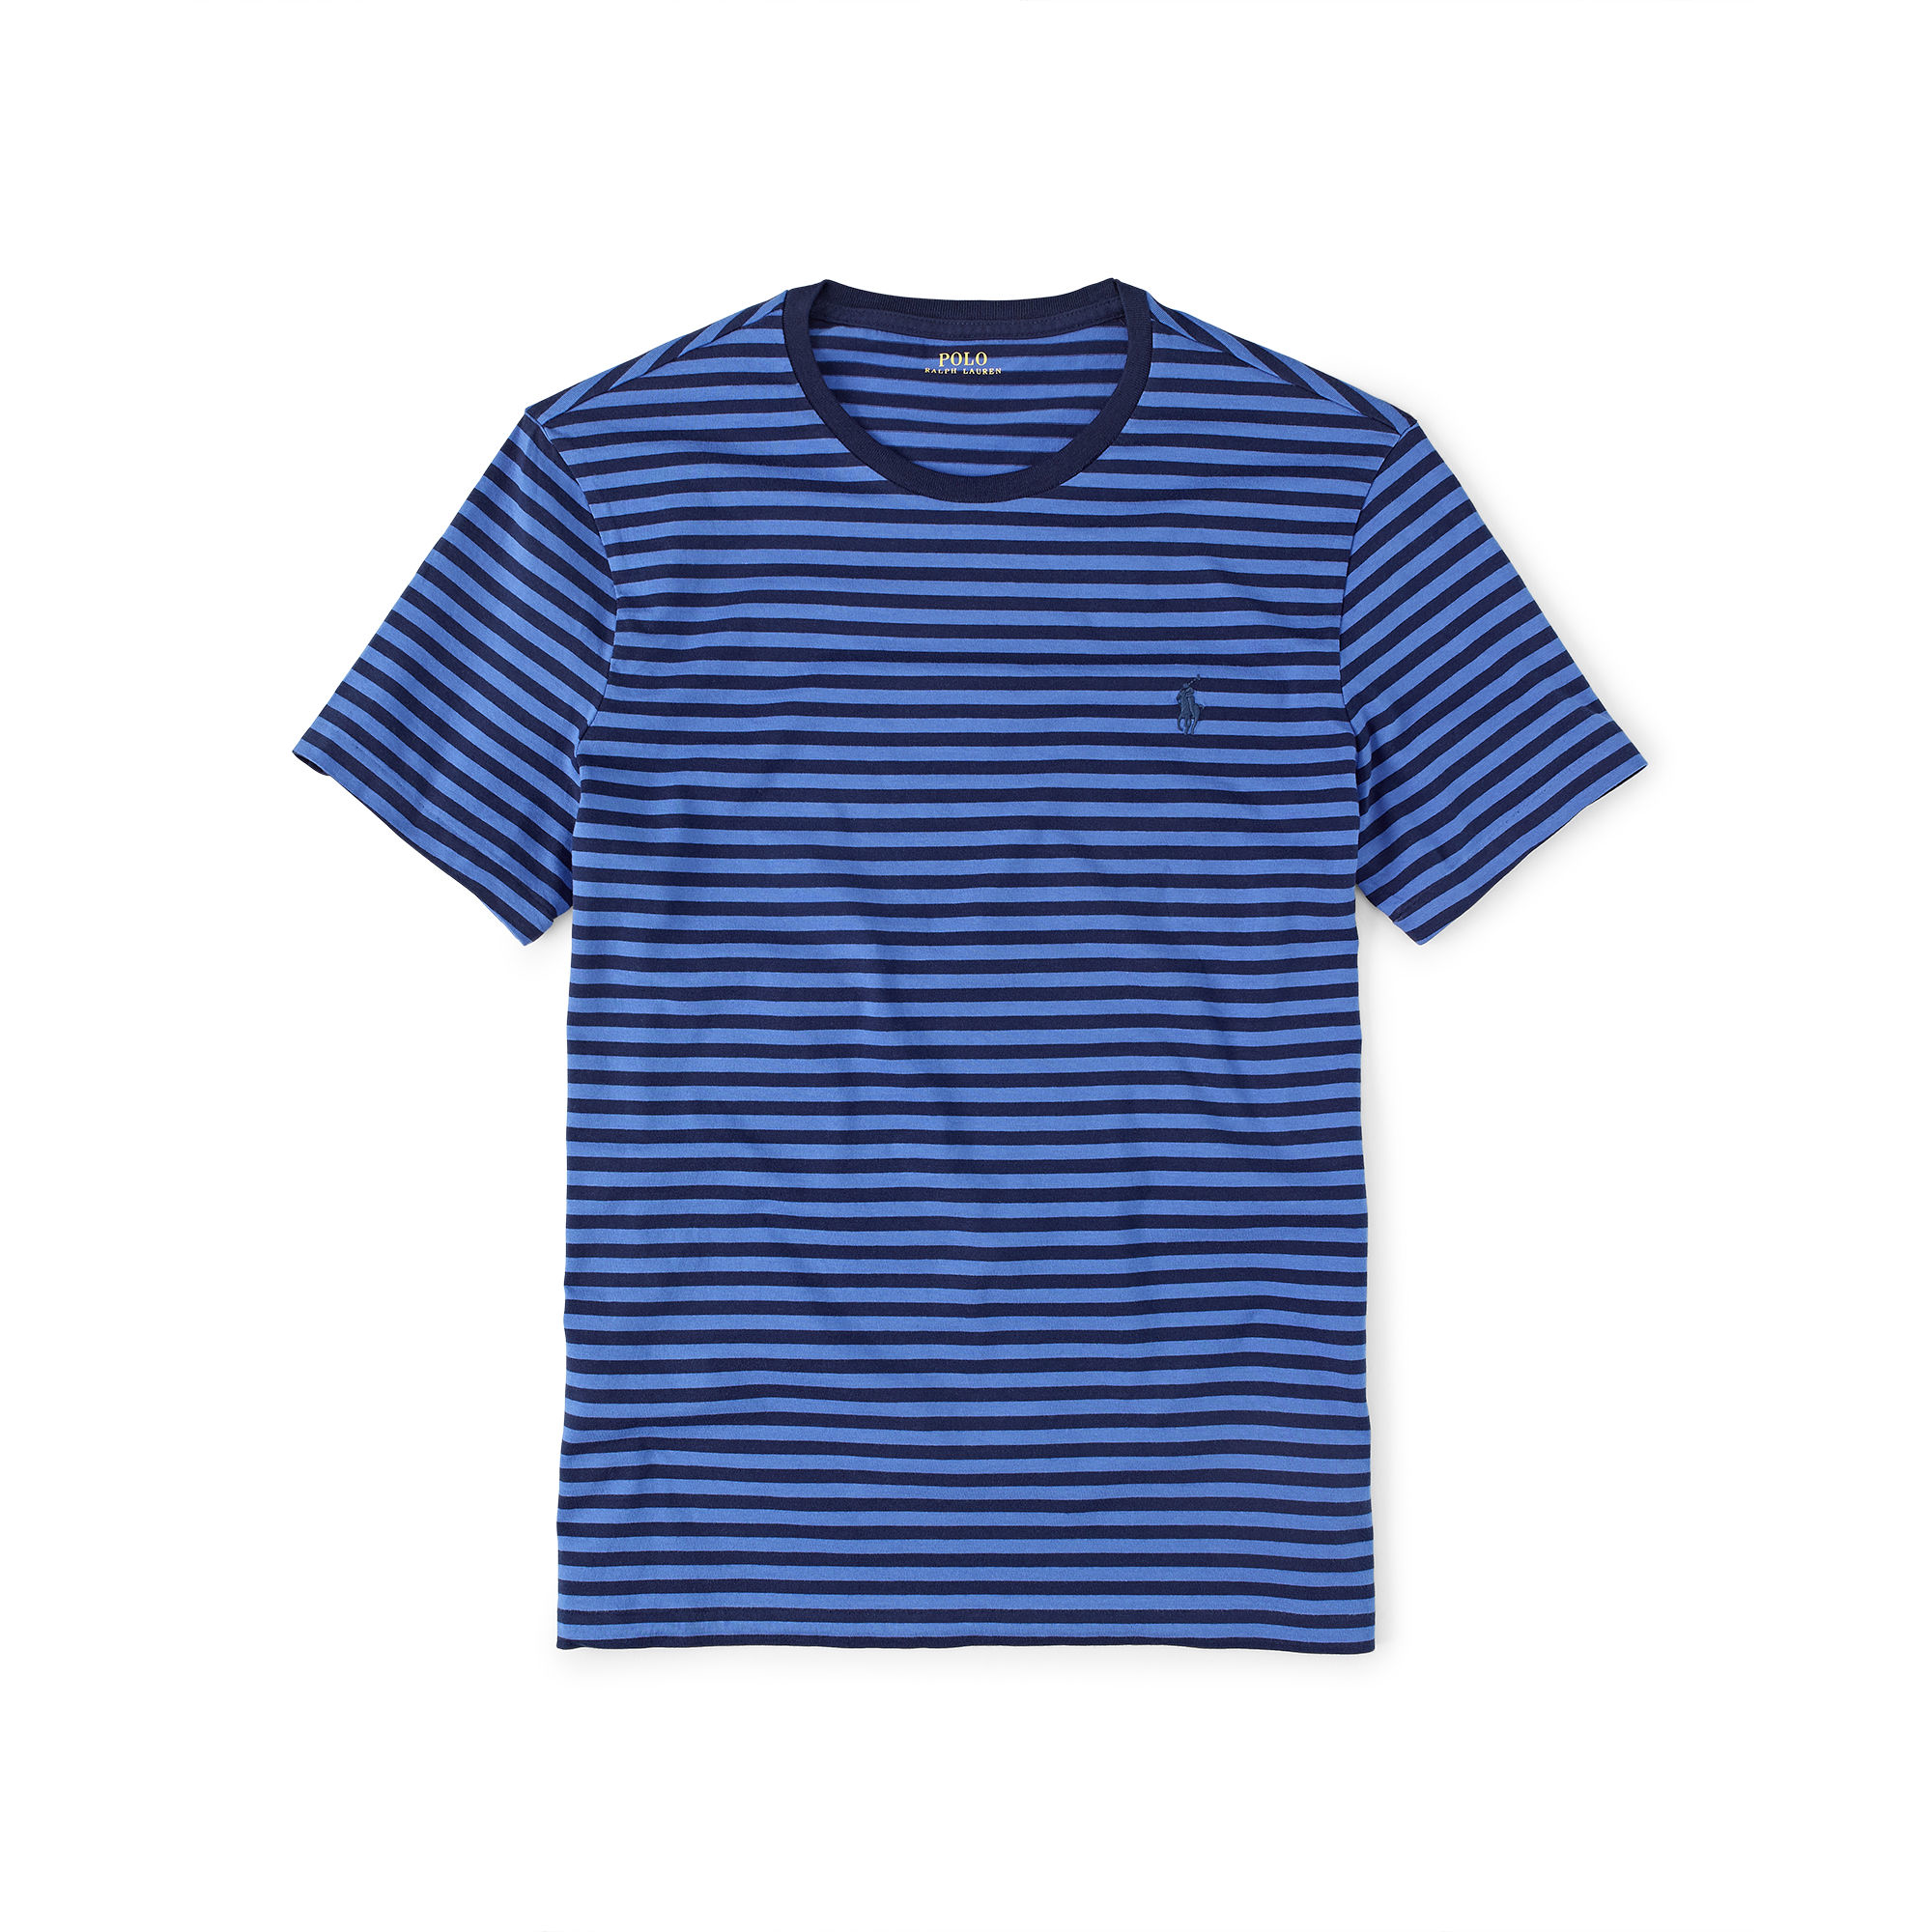 polo ralph lauren custom fit striped t shirt in blue for